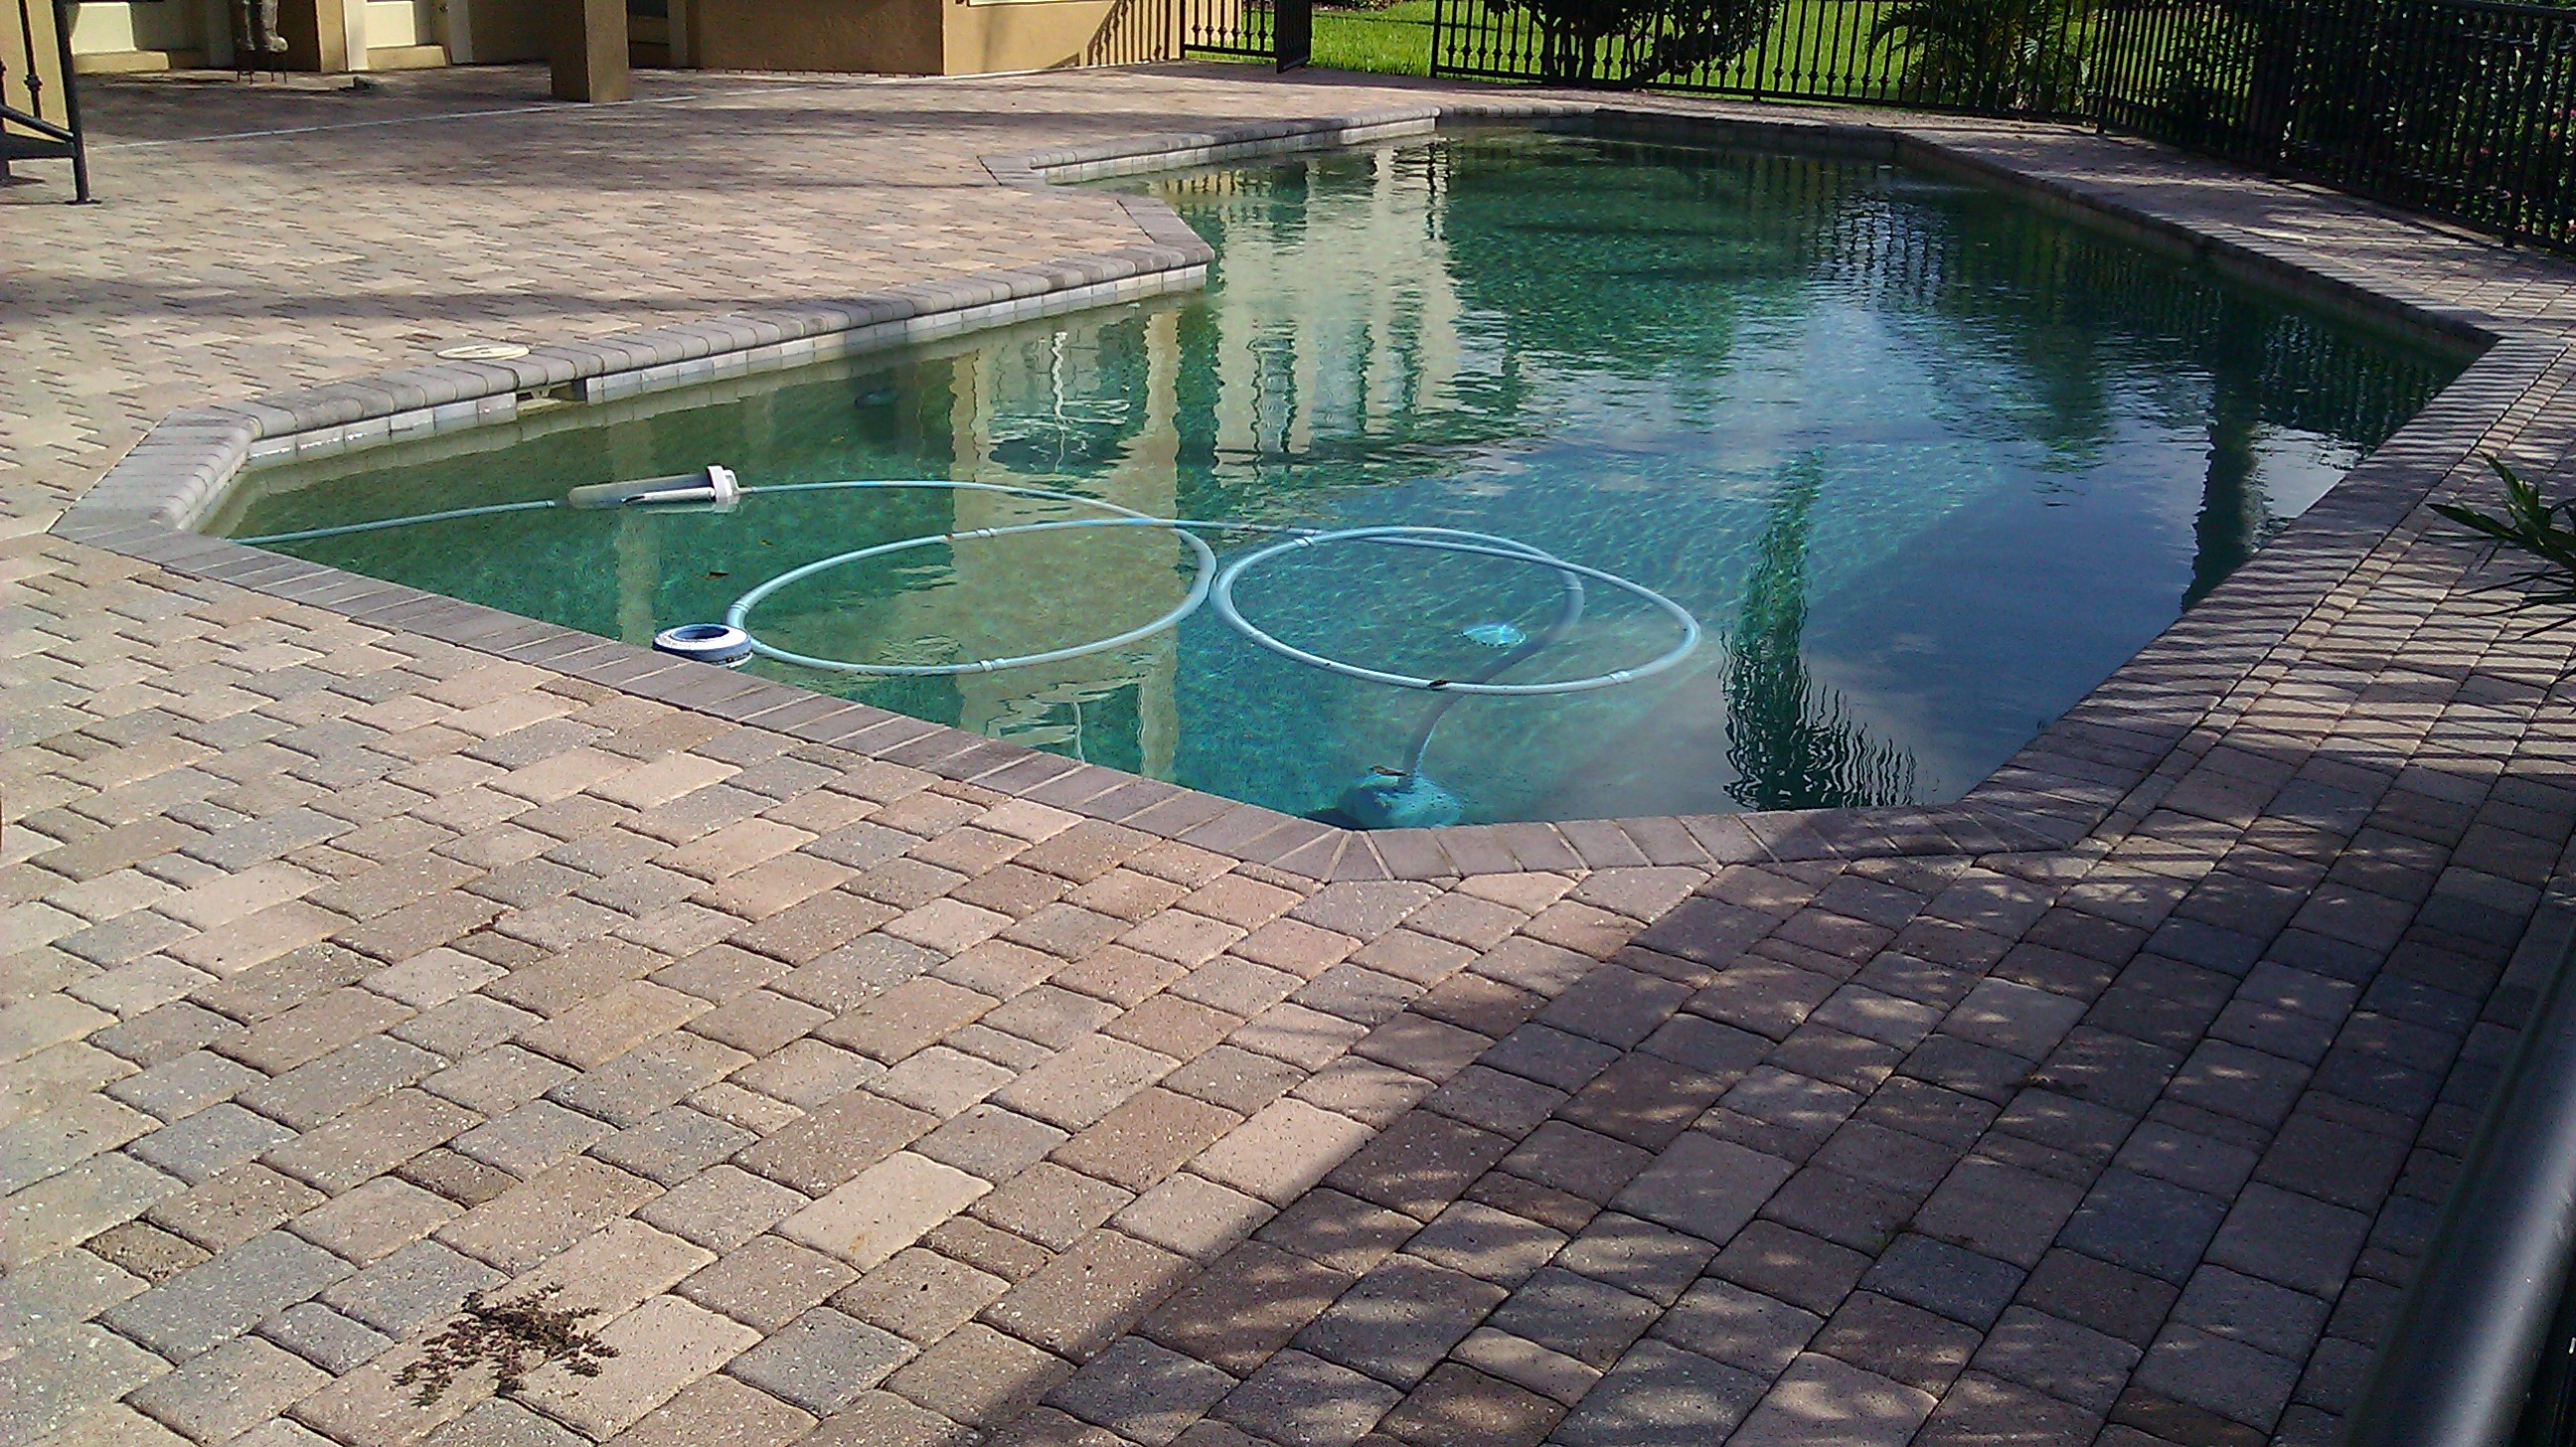 Travertine Pool Deck Sealer Paver Pool Deck Sealing  Brick Pavertravertine Sealing And